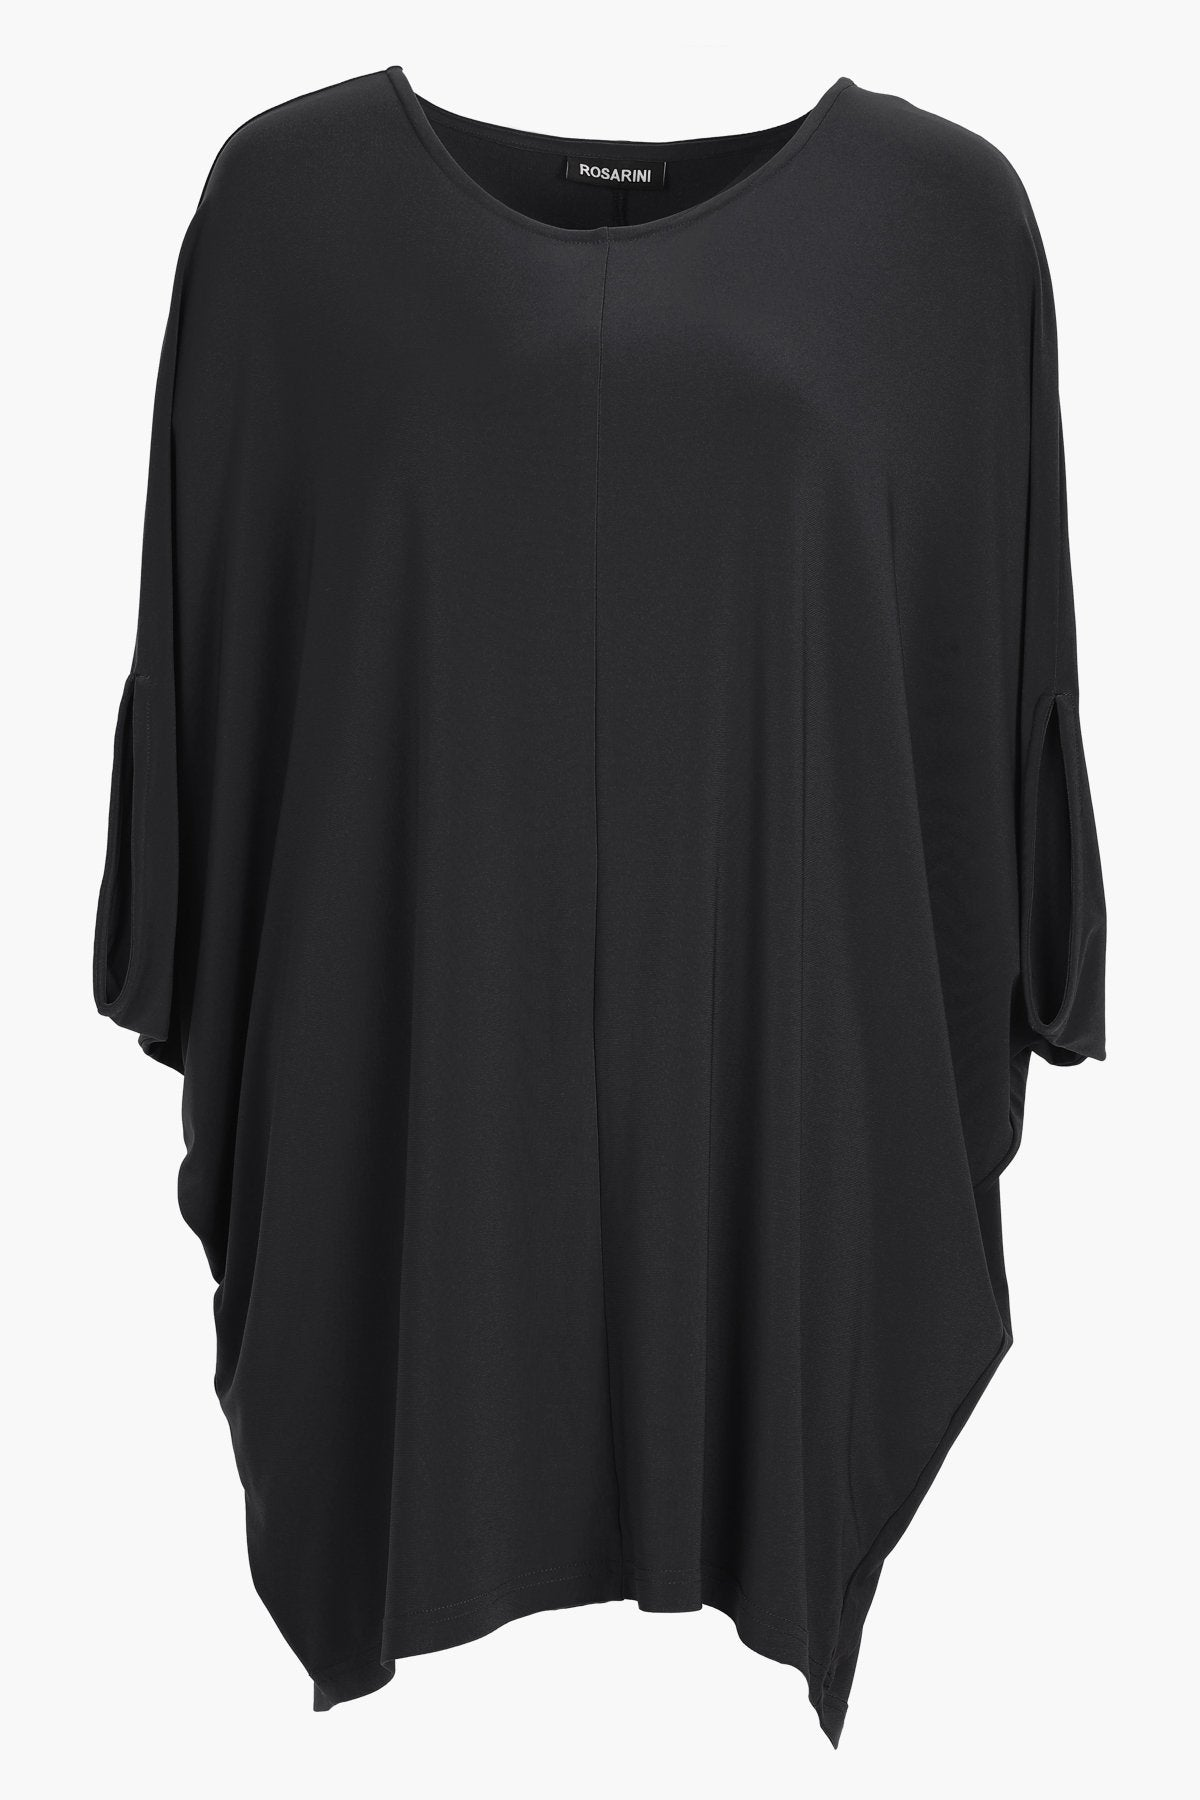 Overall Poncho - Women's Clothing -ROSARINI